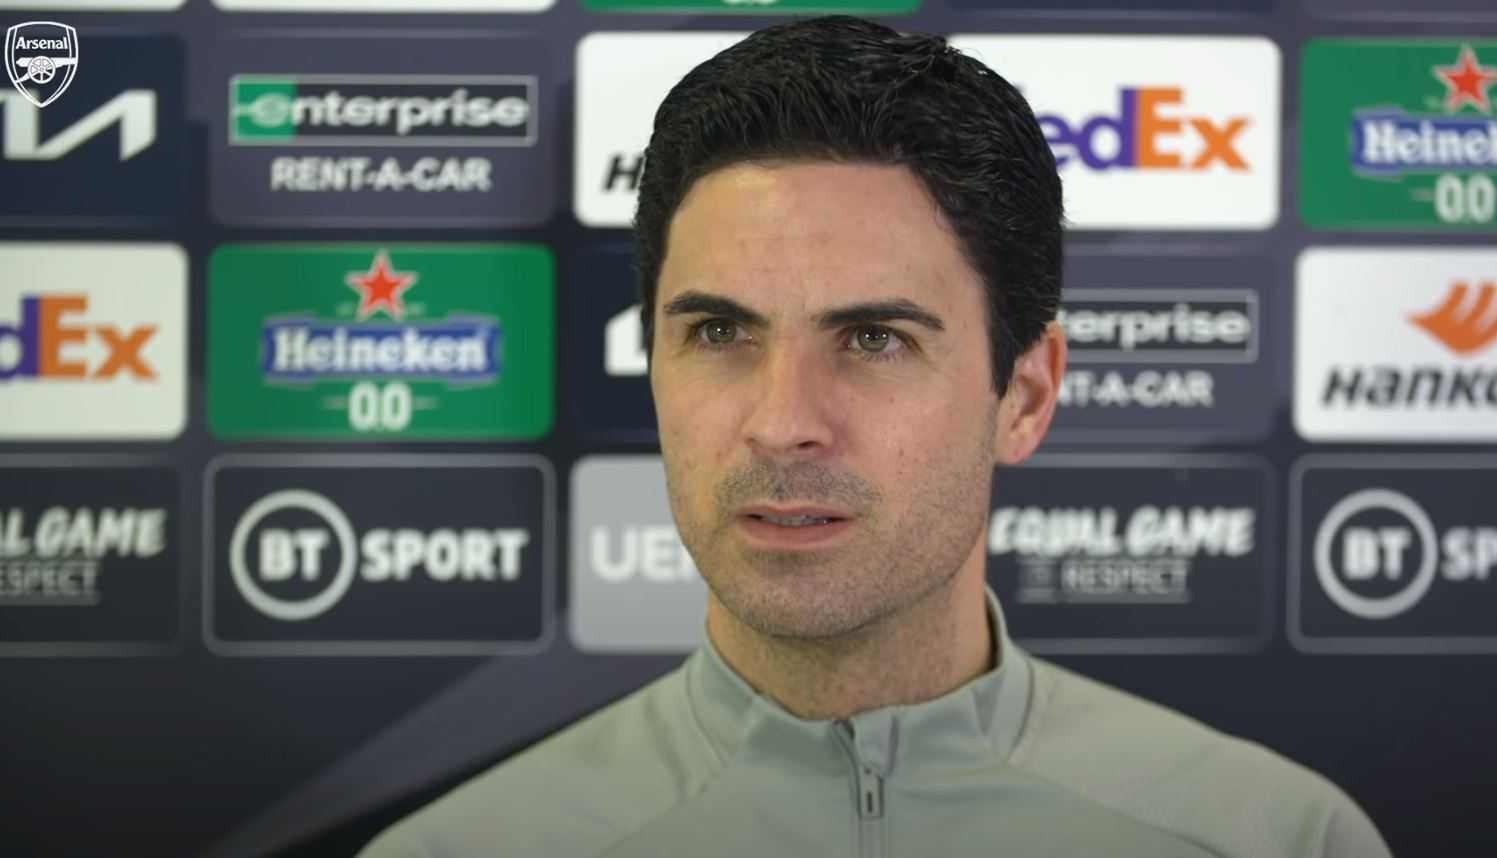 Video: Press Conference - Mikel Arteta on Saka, Partey, Holding, Bellerin and Benfica